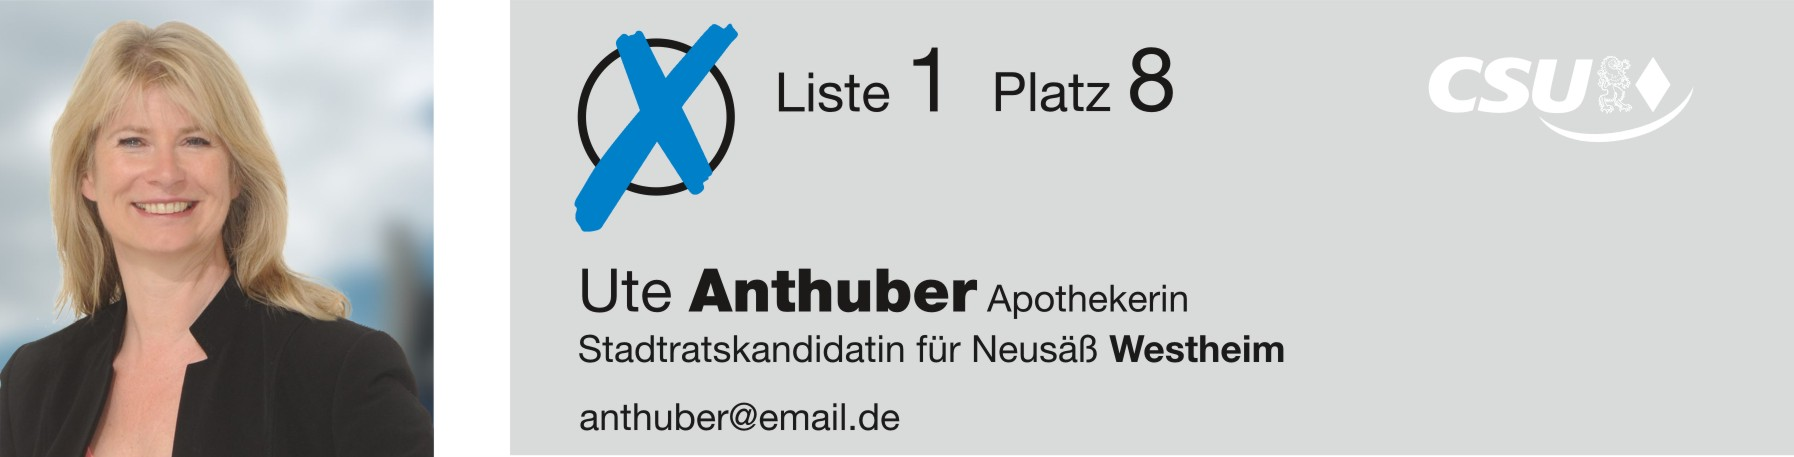 Ute Anthuber